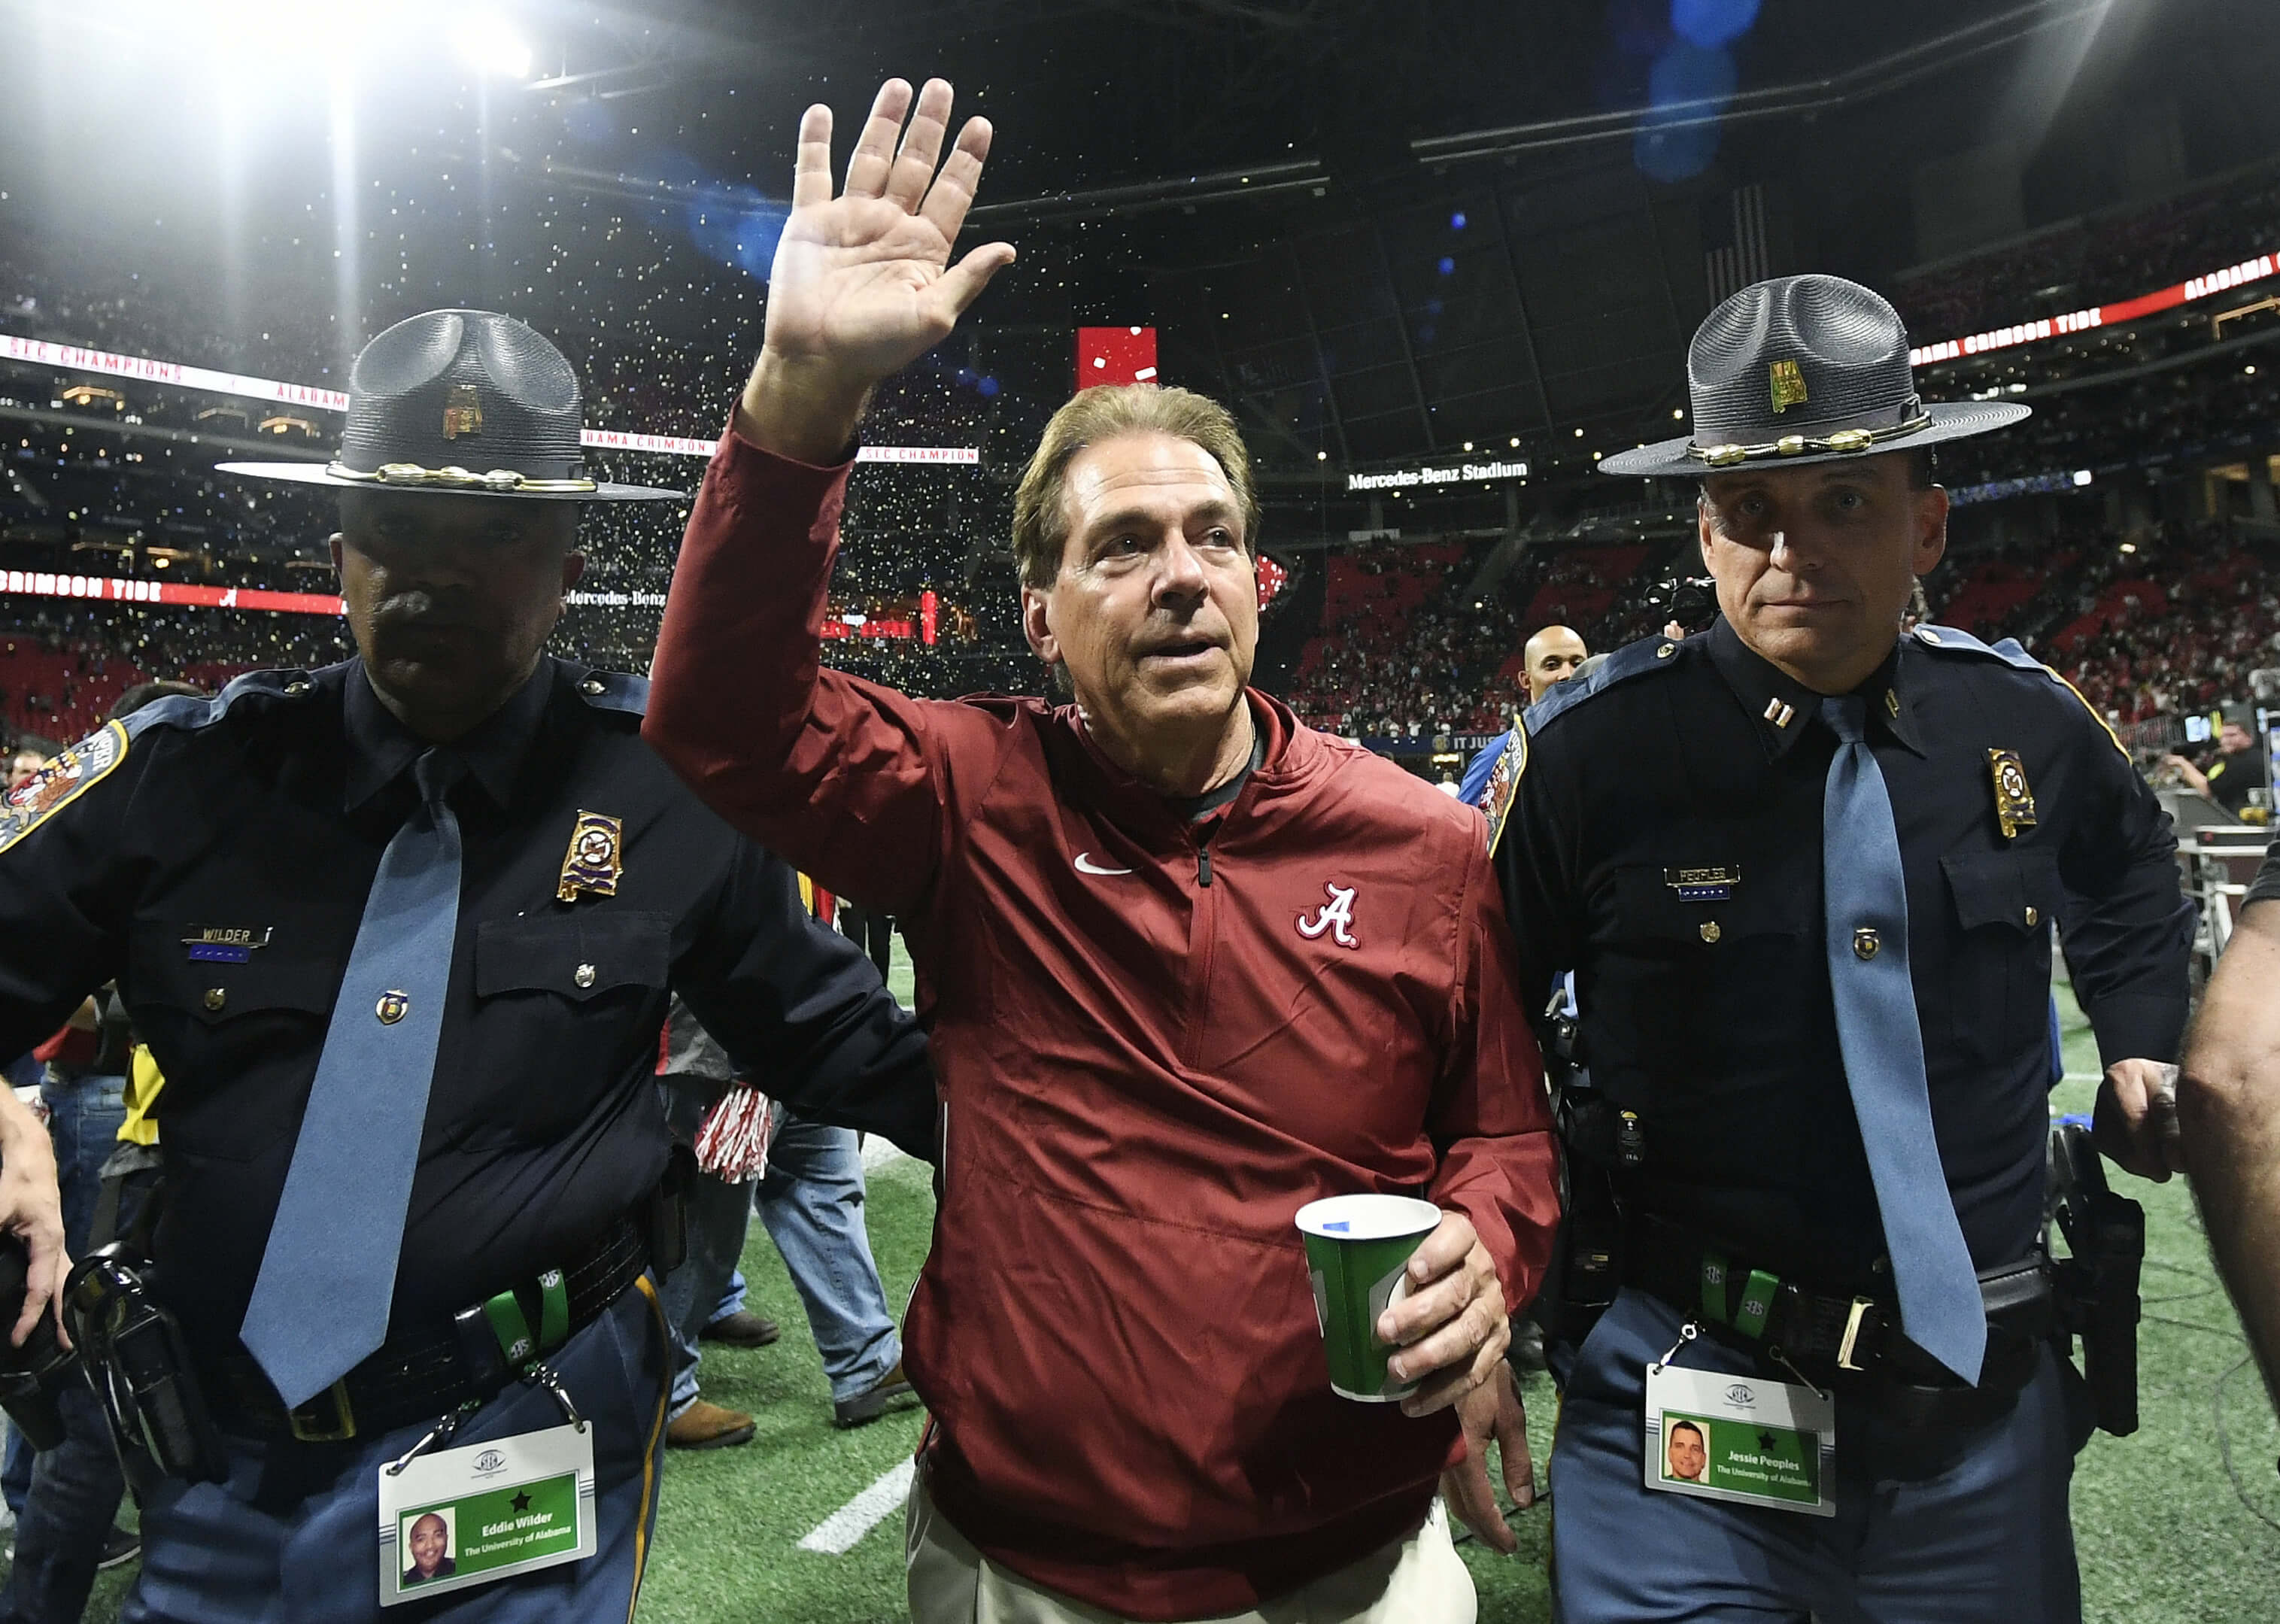 Alabama head coach Nick Saban leaves the field after the Southeastern Conference championship game Dec. 1 against Georgia.